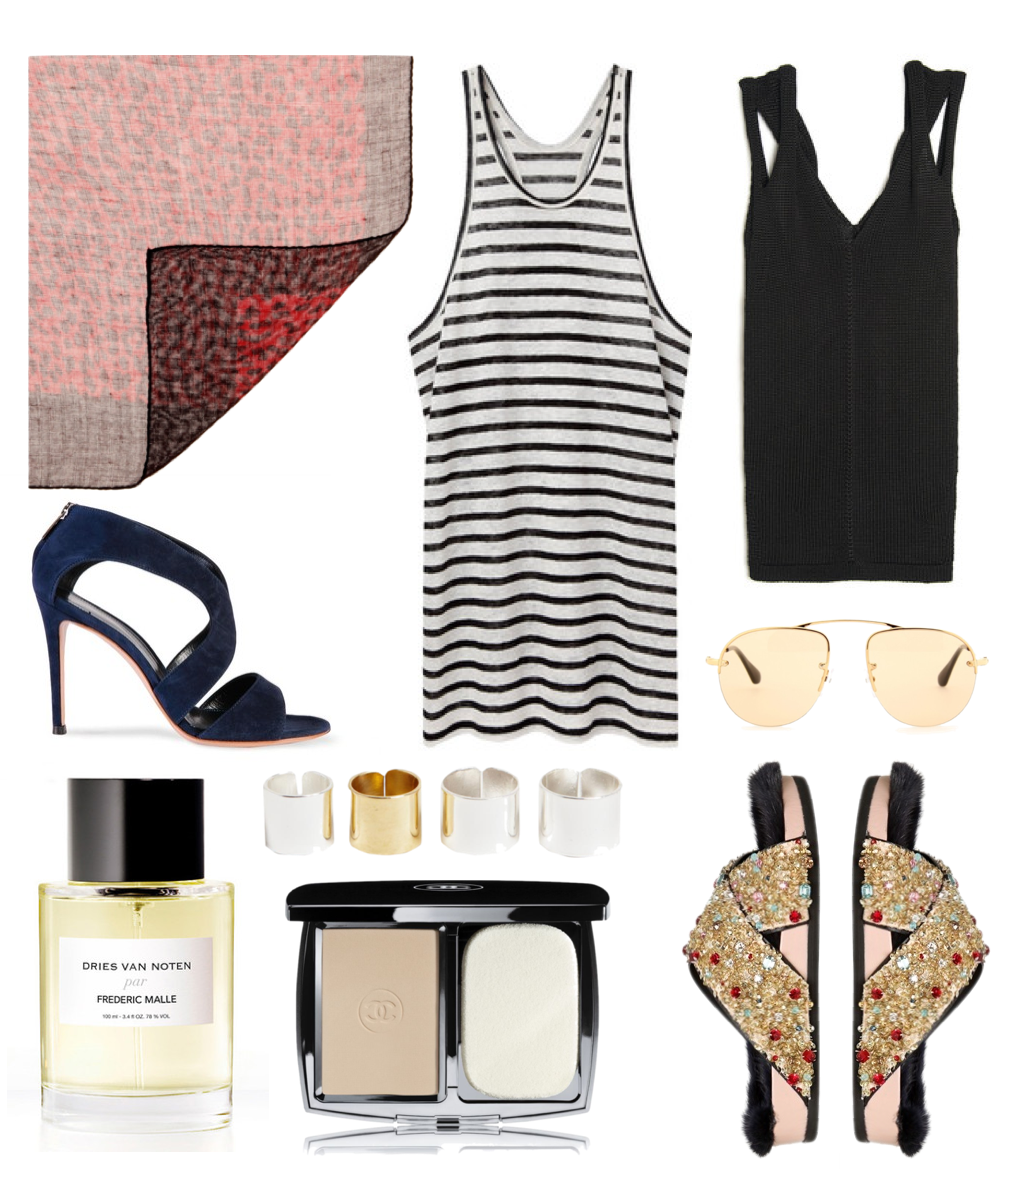 Spring Wish List - Saint Laurent leaopard scarf, Alexander Wang tanks, Cline slipeprs, Dries Van Noten Perfume, Chanel roughe, Prada sunglasses, Gianvito Rossi sandals